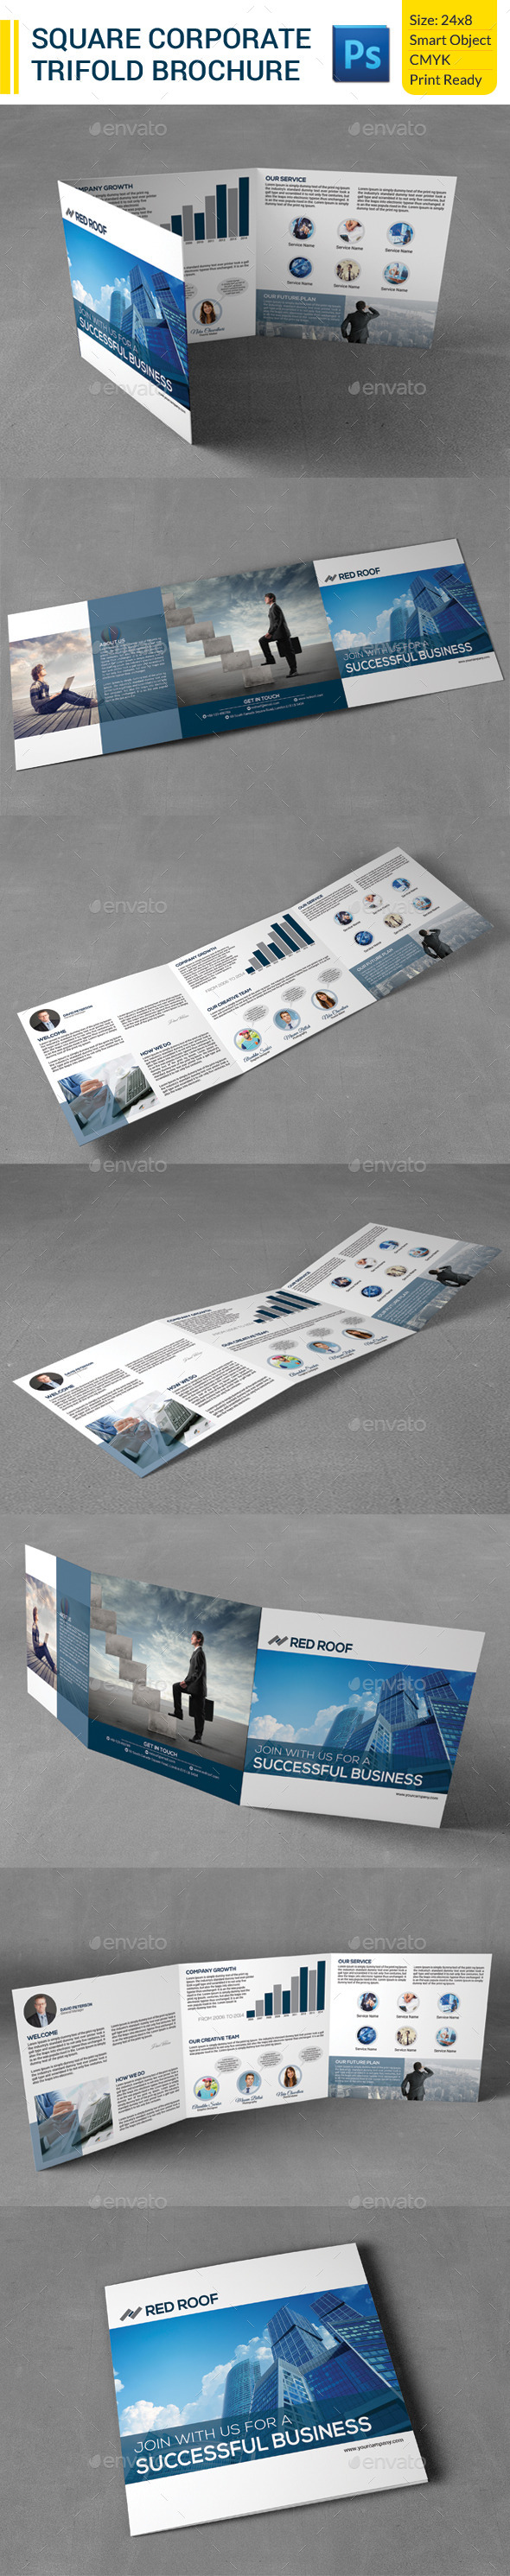 GraphicRiver Square Corporate Trifold Brochure 9683954